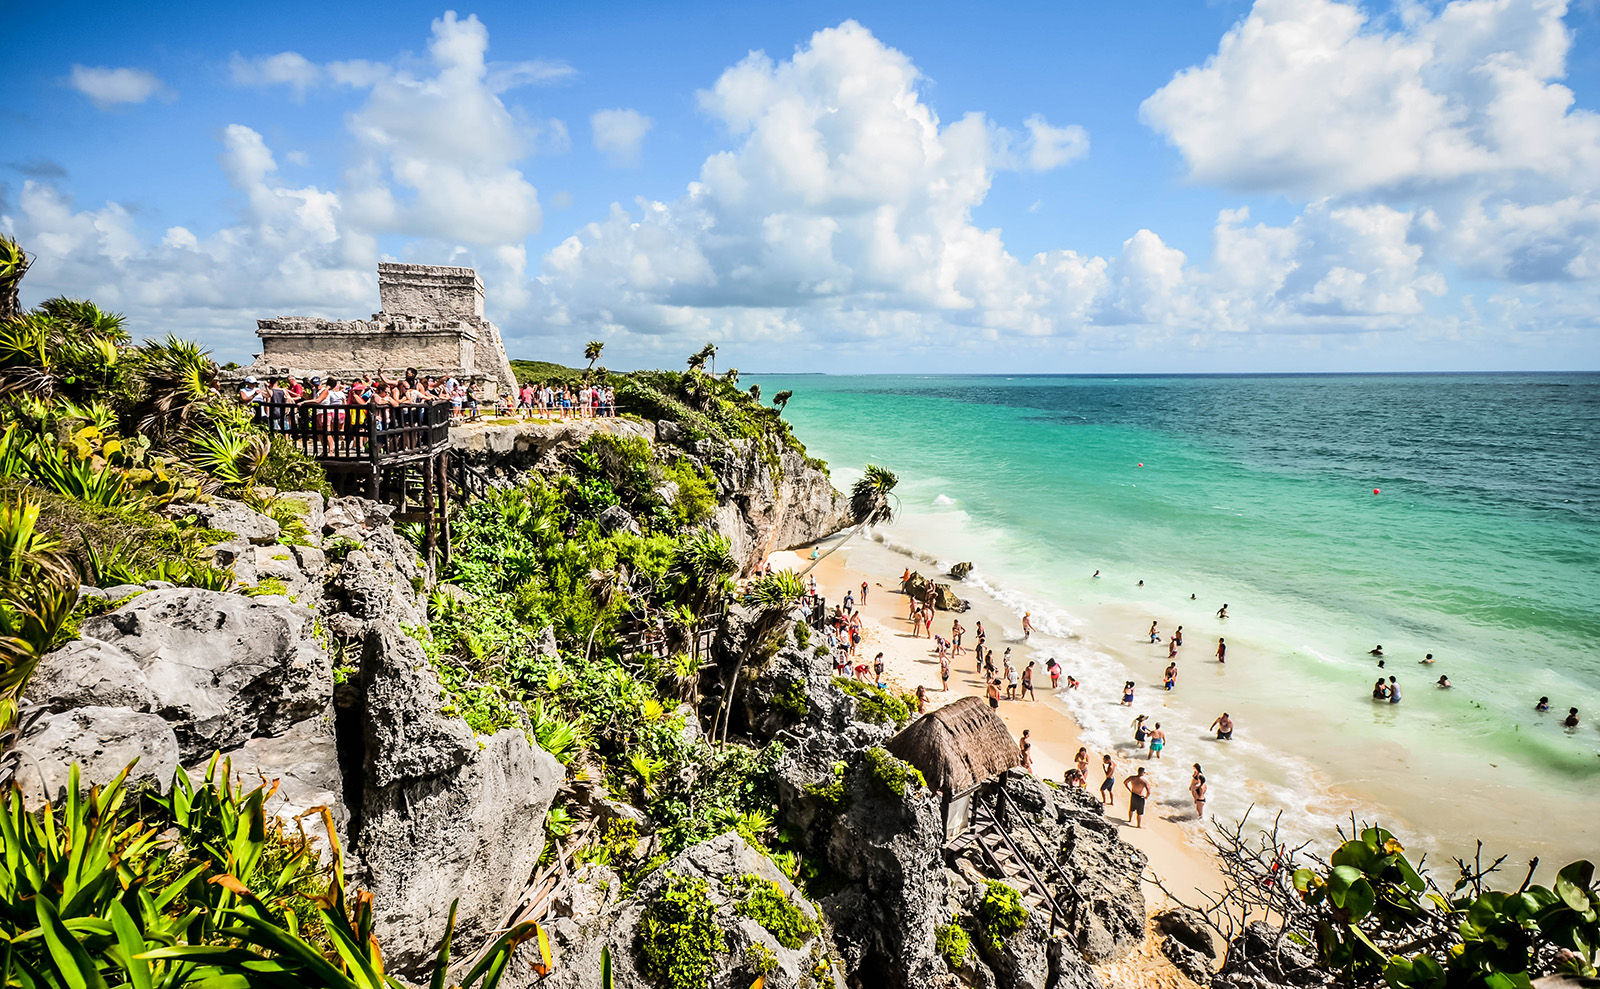 mayan ruins on a cliff above a beach in tulum, mexico